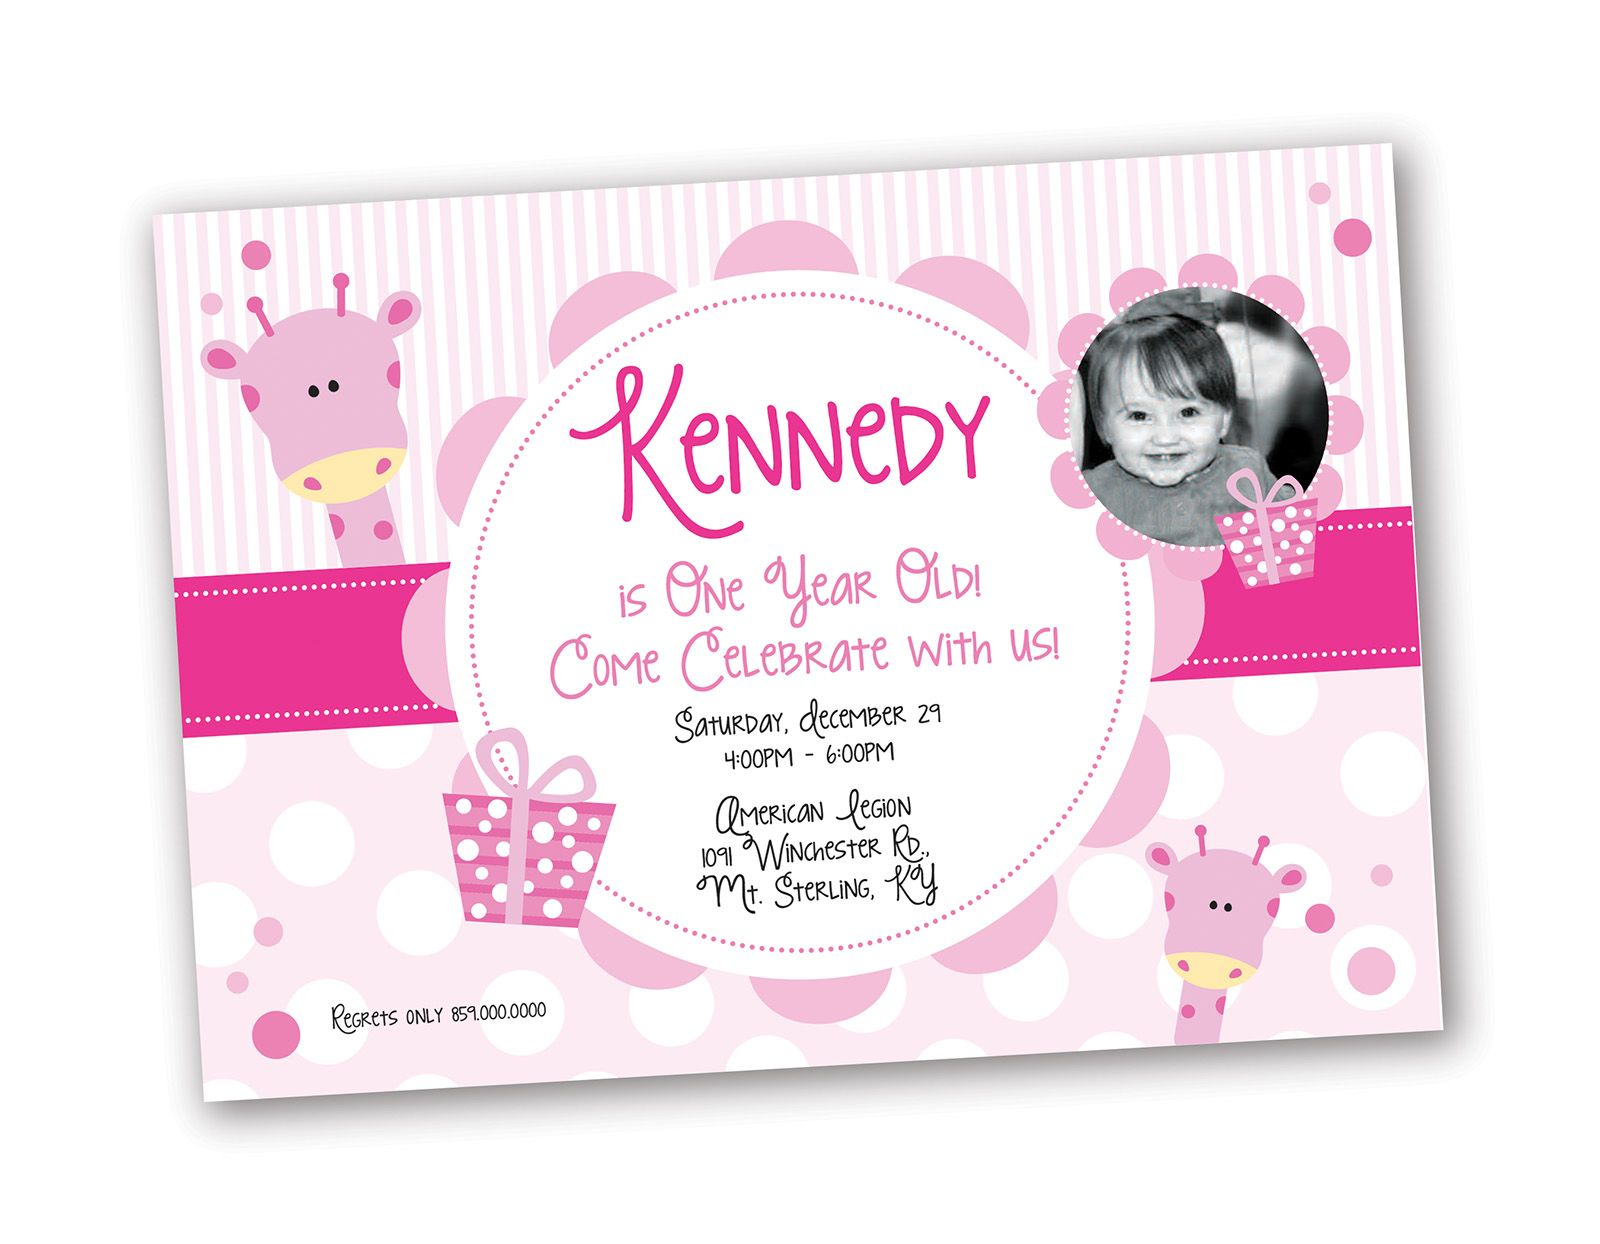 1 Year Old Girl Birthday Invitation Giraffe Theme Design